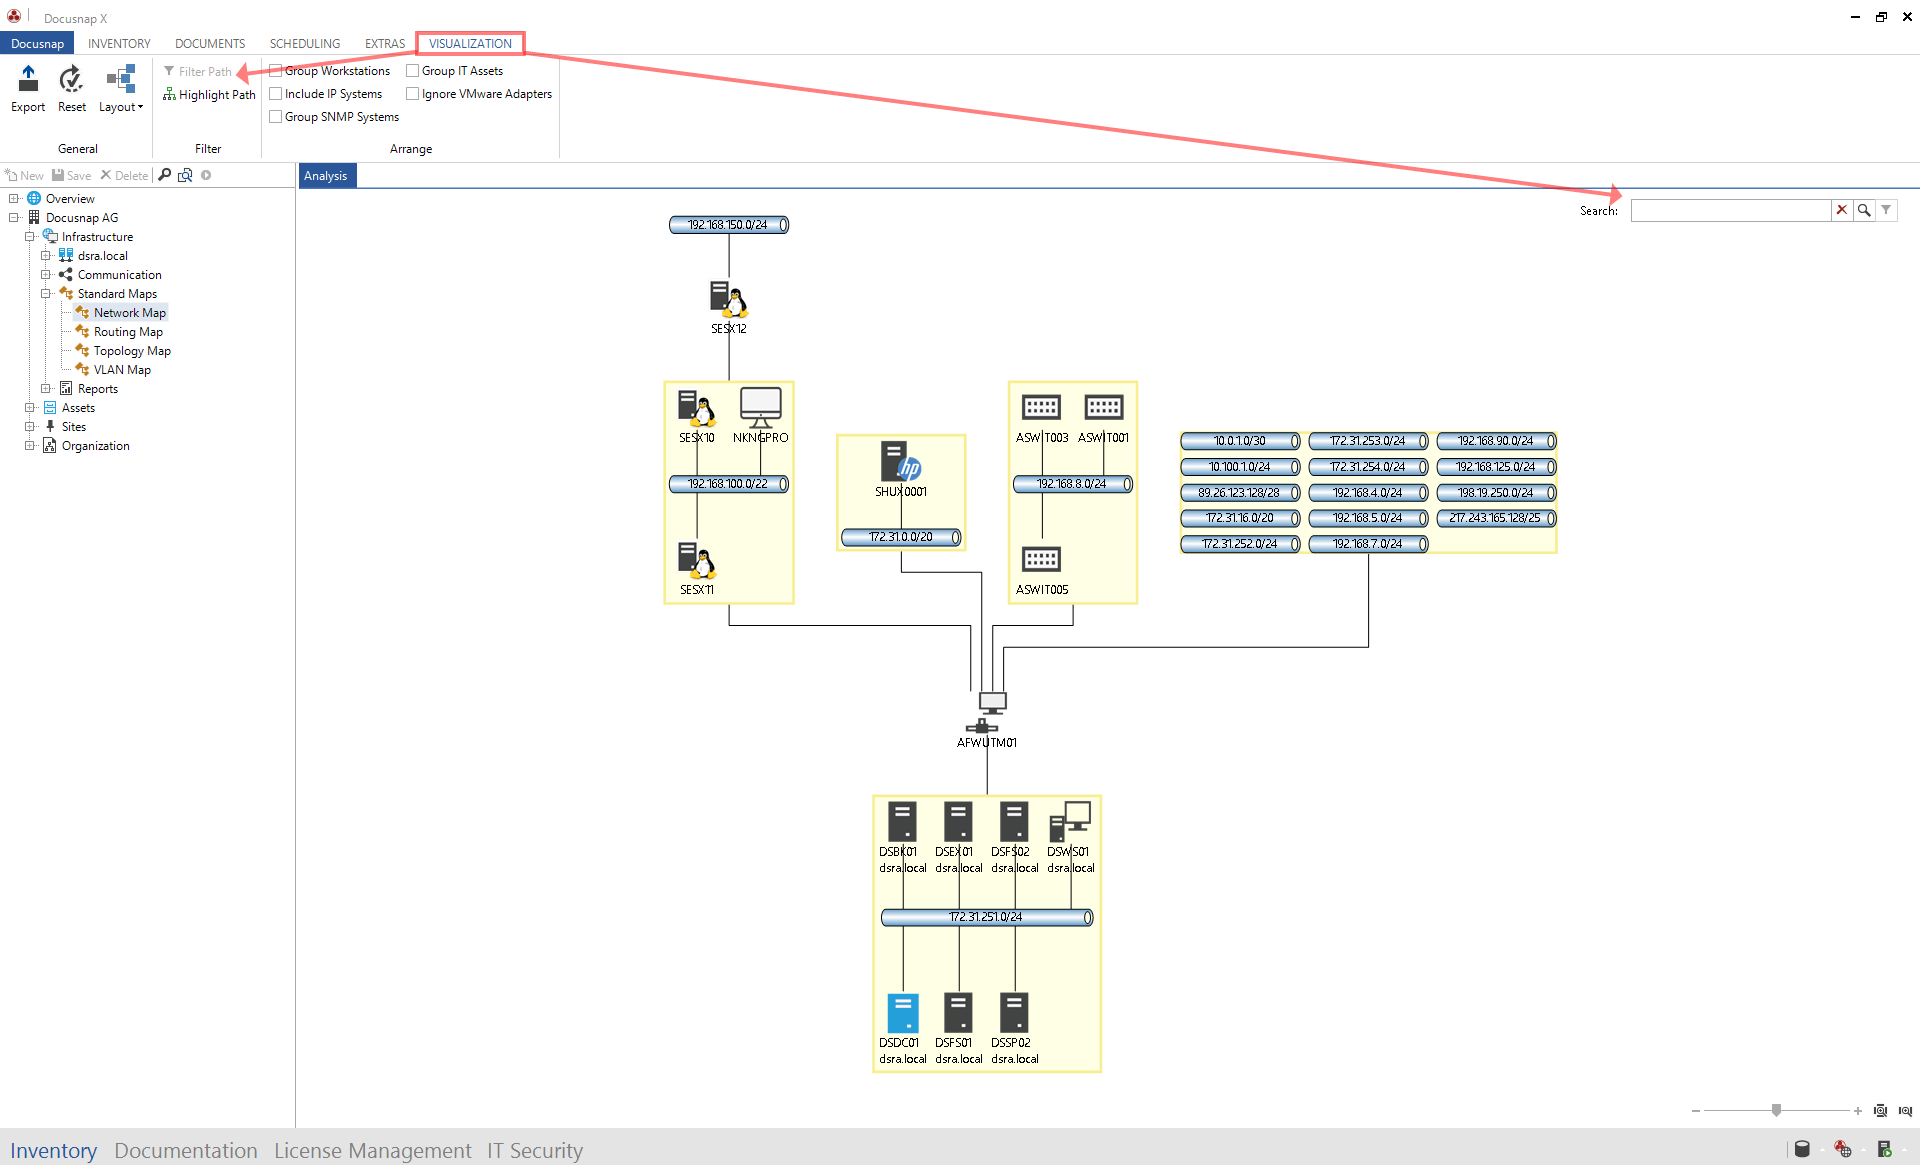 Visualization of network maps in Docusnap